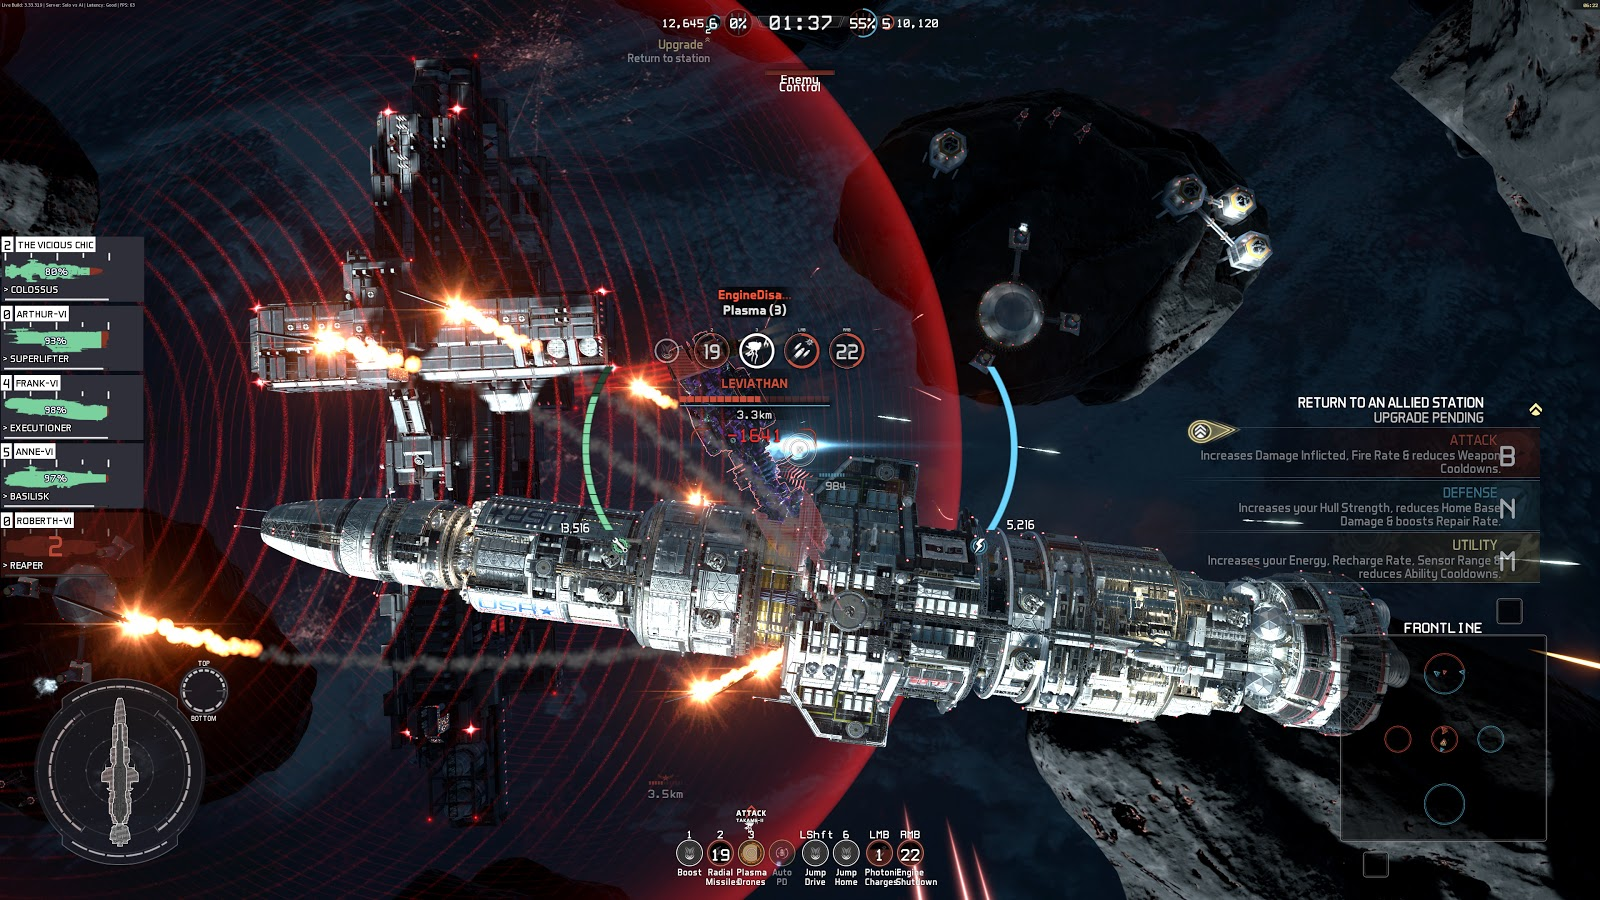 Fractured space. I first got this as a public beta that allowed me to keep a permanent copy of the game. The interface and graphics have changed over a long period of time. If you like gratituous space battles on a Star Trek scale and don't mind so many things happening at once, this game is for you.